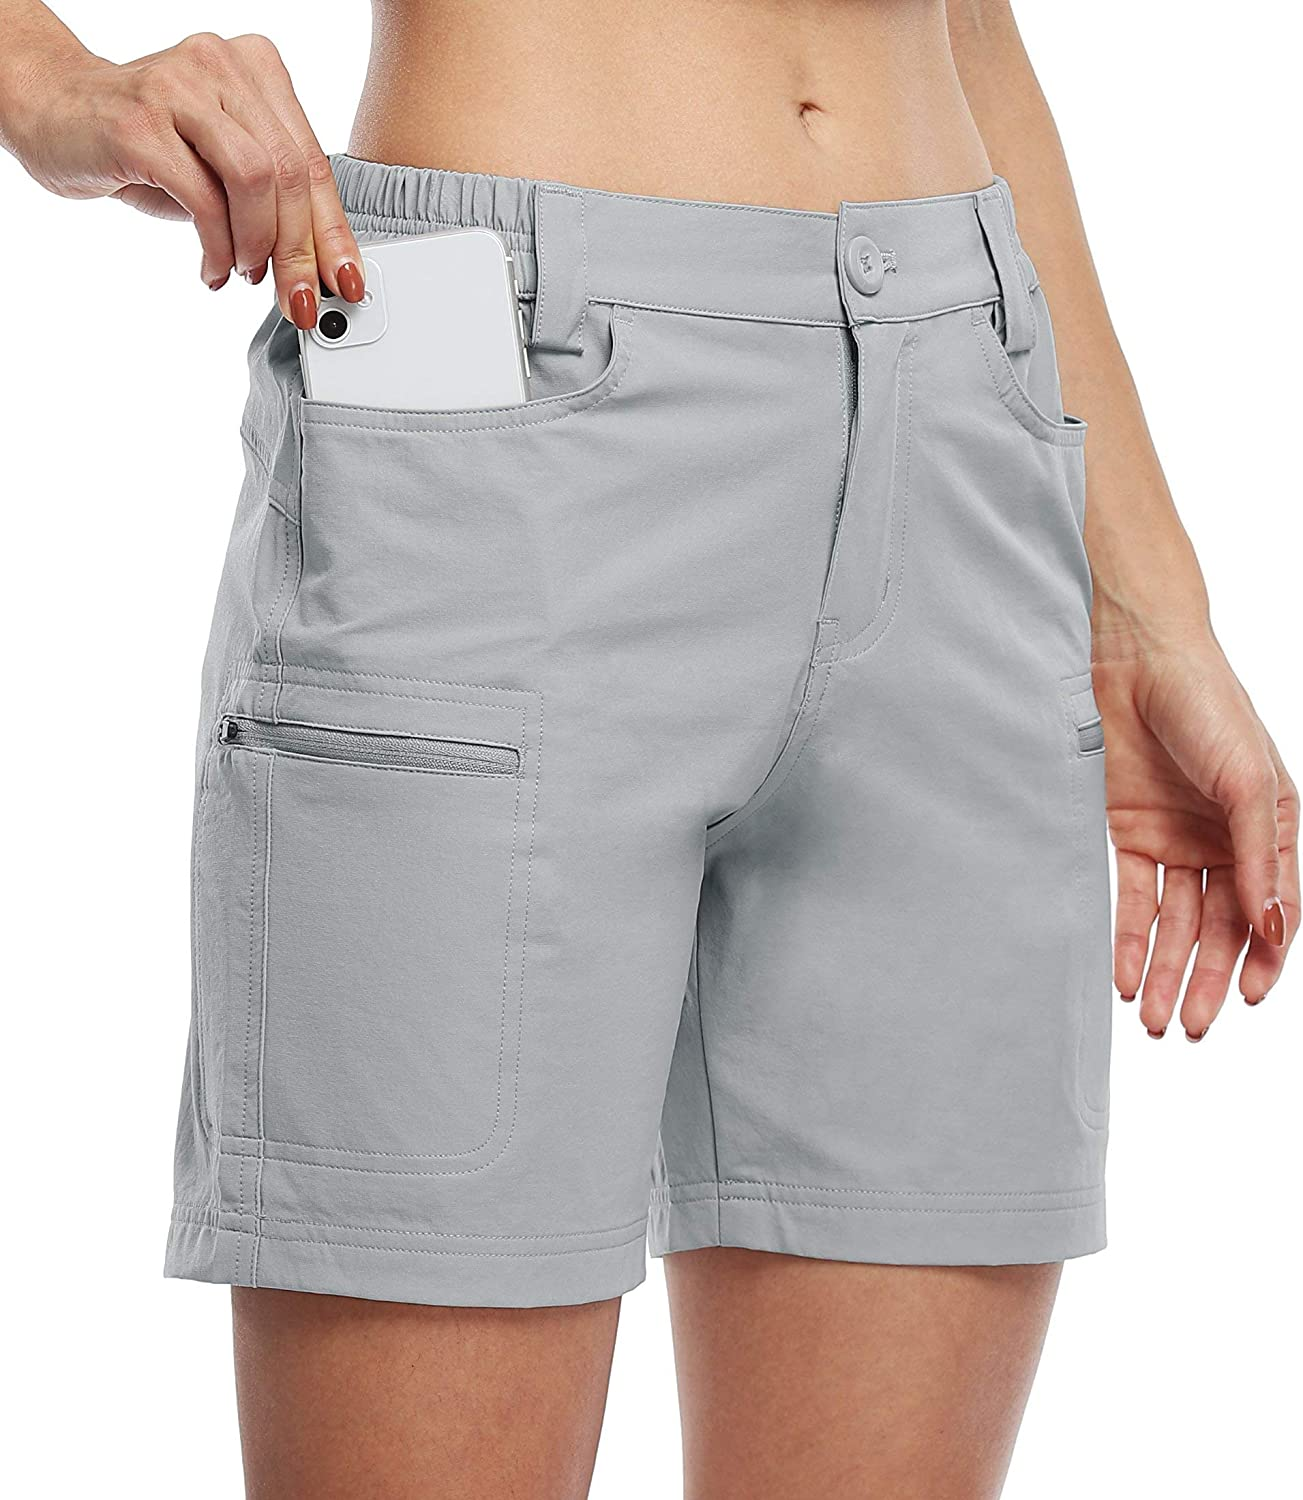 """Willit Women's Hiking Cargo Shorts Stretch Golf Active Shorts Water Resistant Outdoor Summer Shorts with Pockets 5"""" : Clothing"""